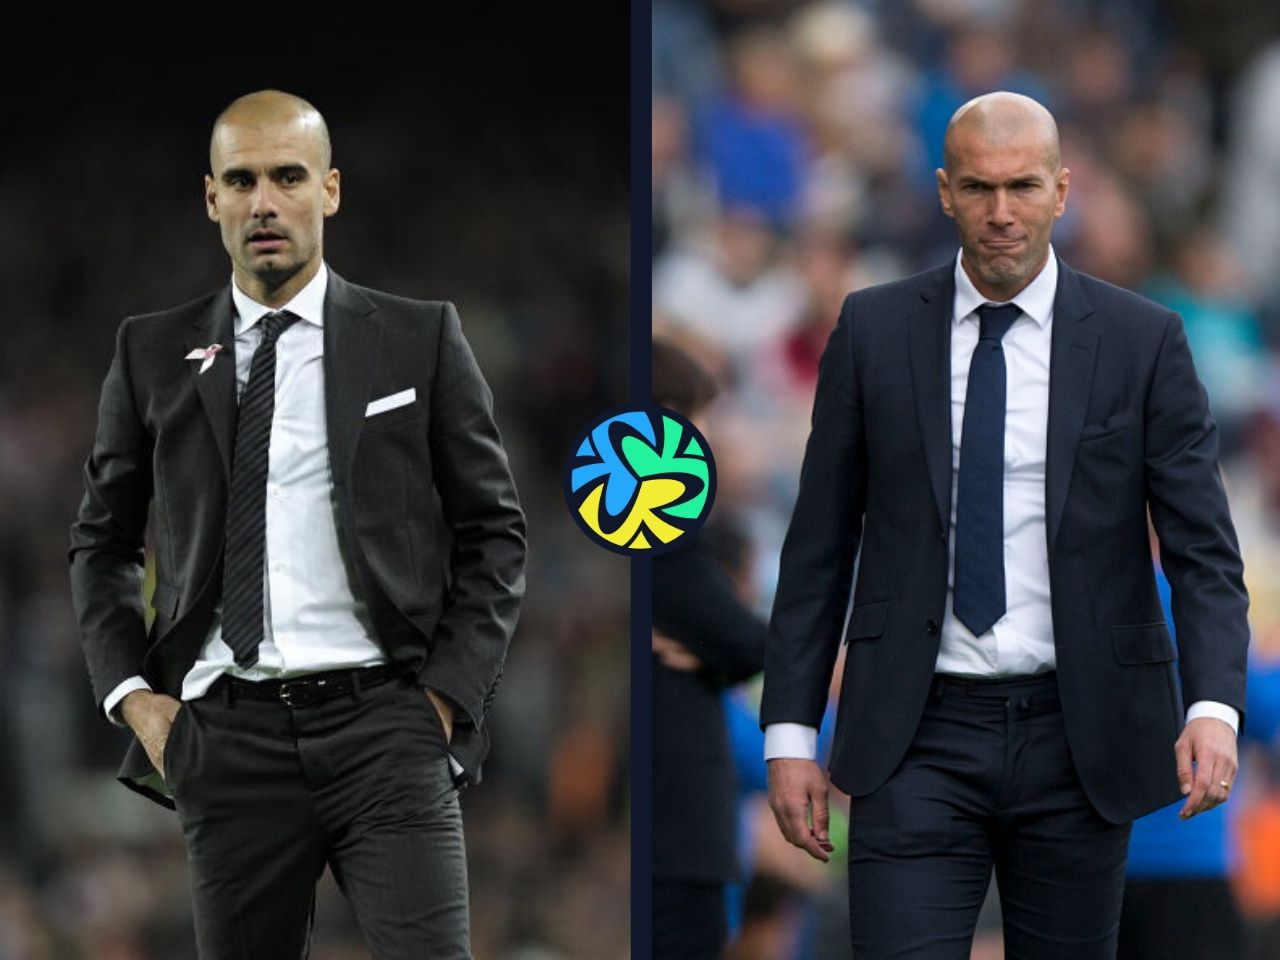 Top 5 players who successfully coached their clubs